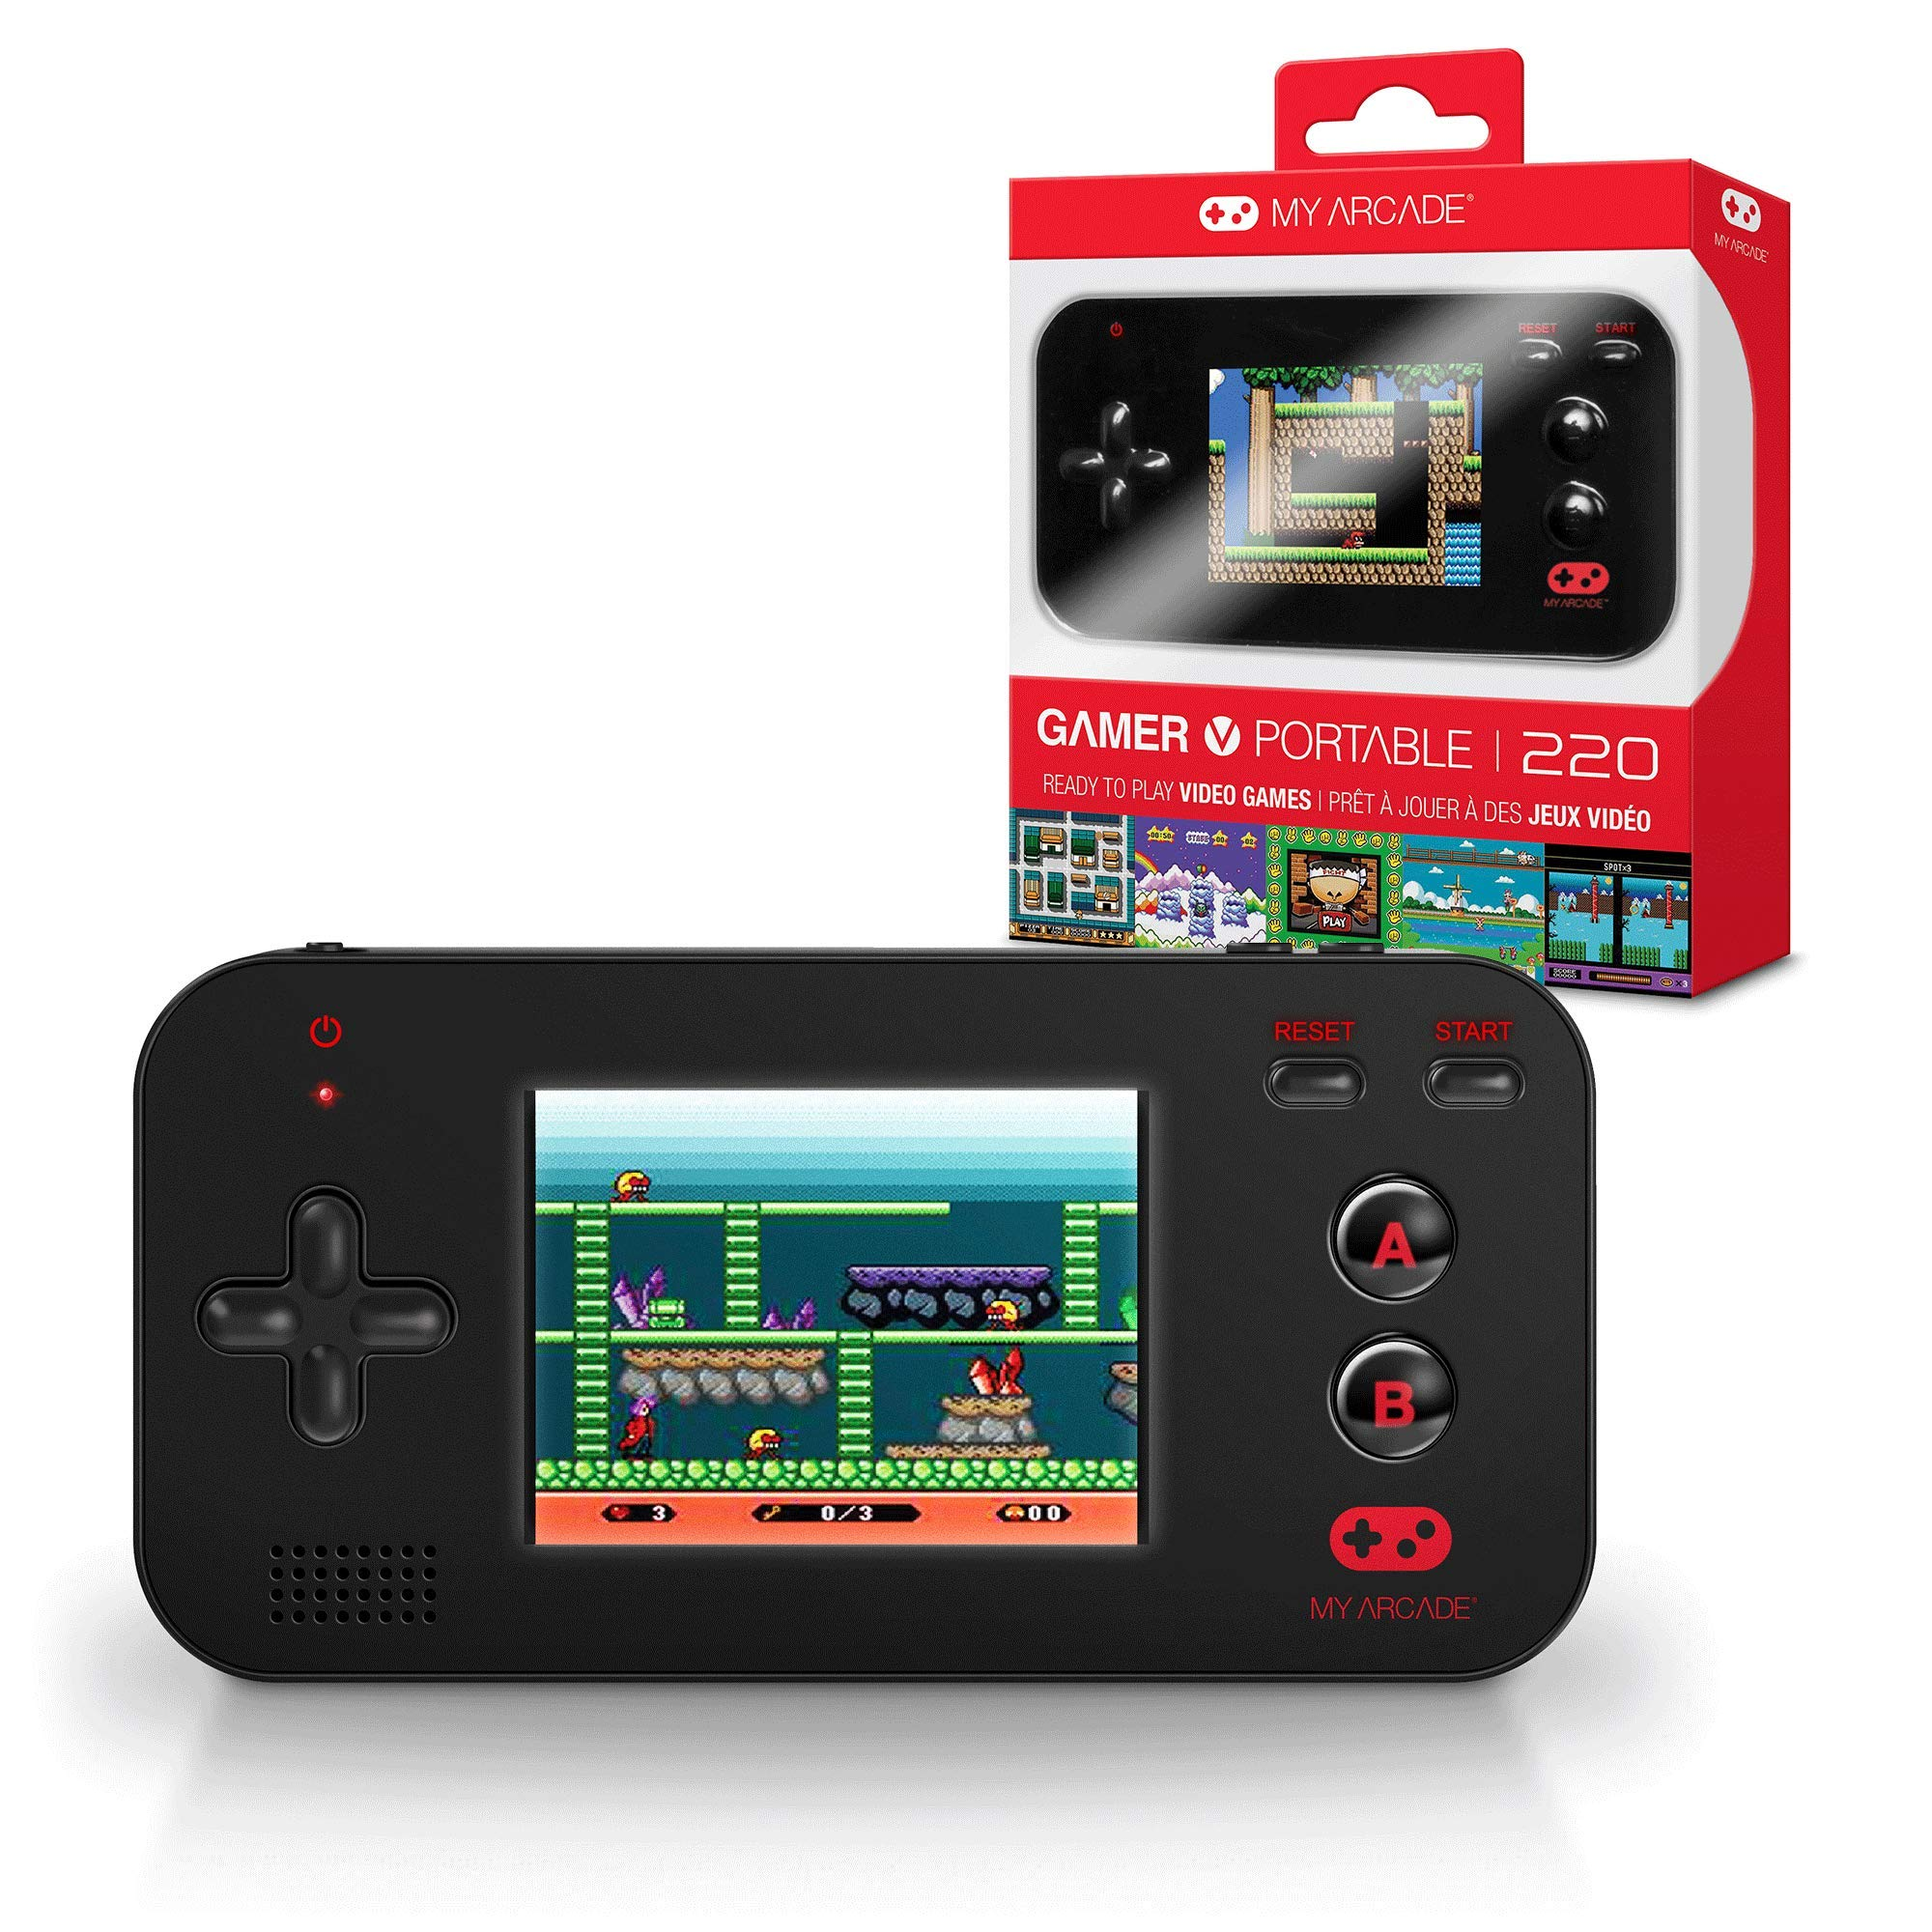 My Arcade Gamer V Portable - Handheld Gaming System - 220 Retro Style Games - Lightweight Compact Size - Battery Powered - Full Color Display - Volume Buttons - Black by My Arcade